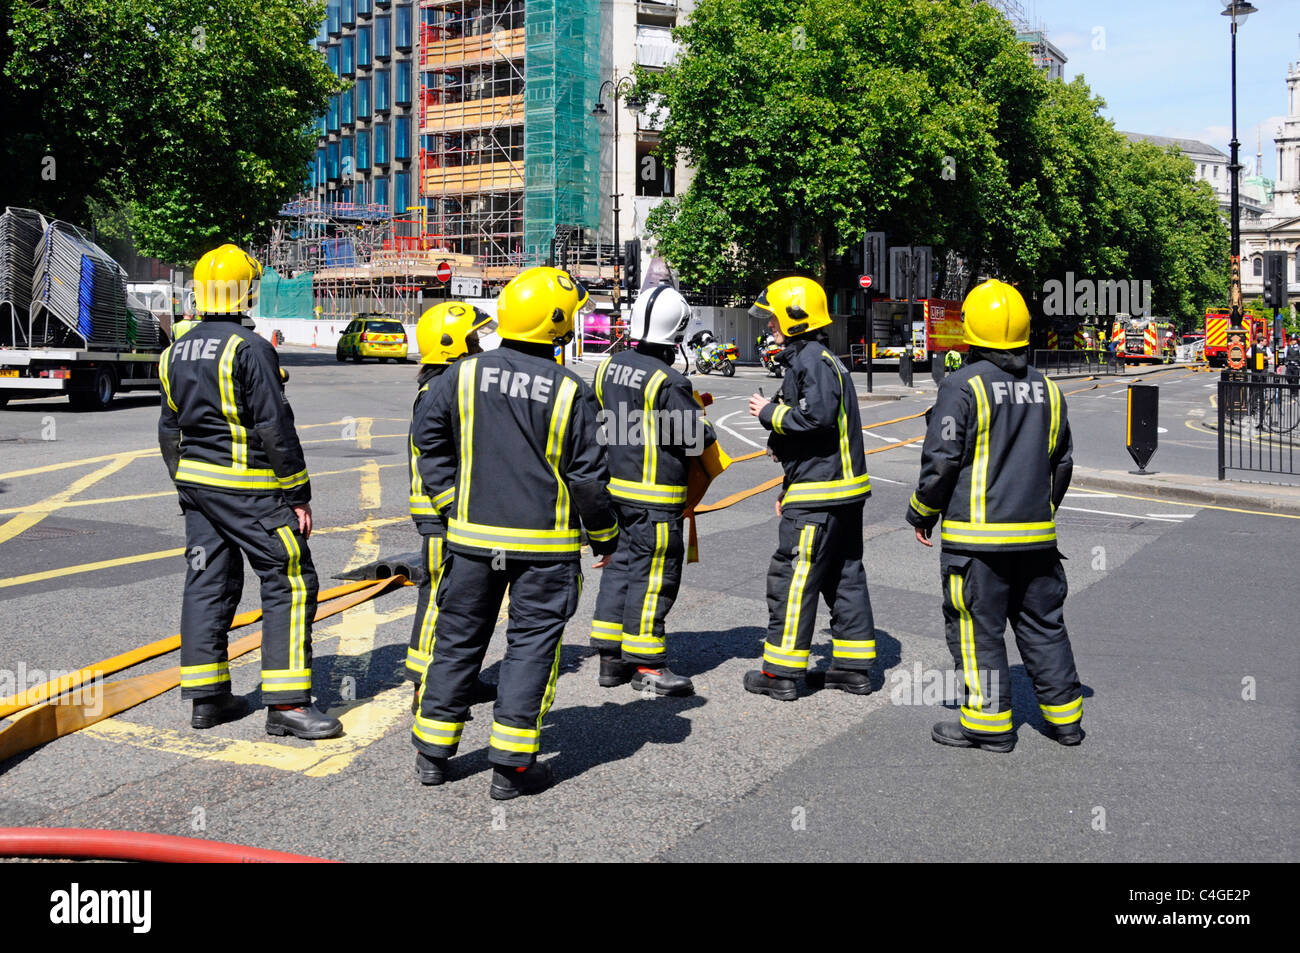 Additional fire crew arrive at major fire at Aldwych London Stock Photo